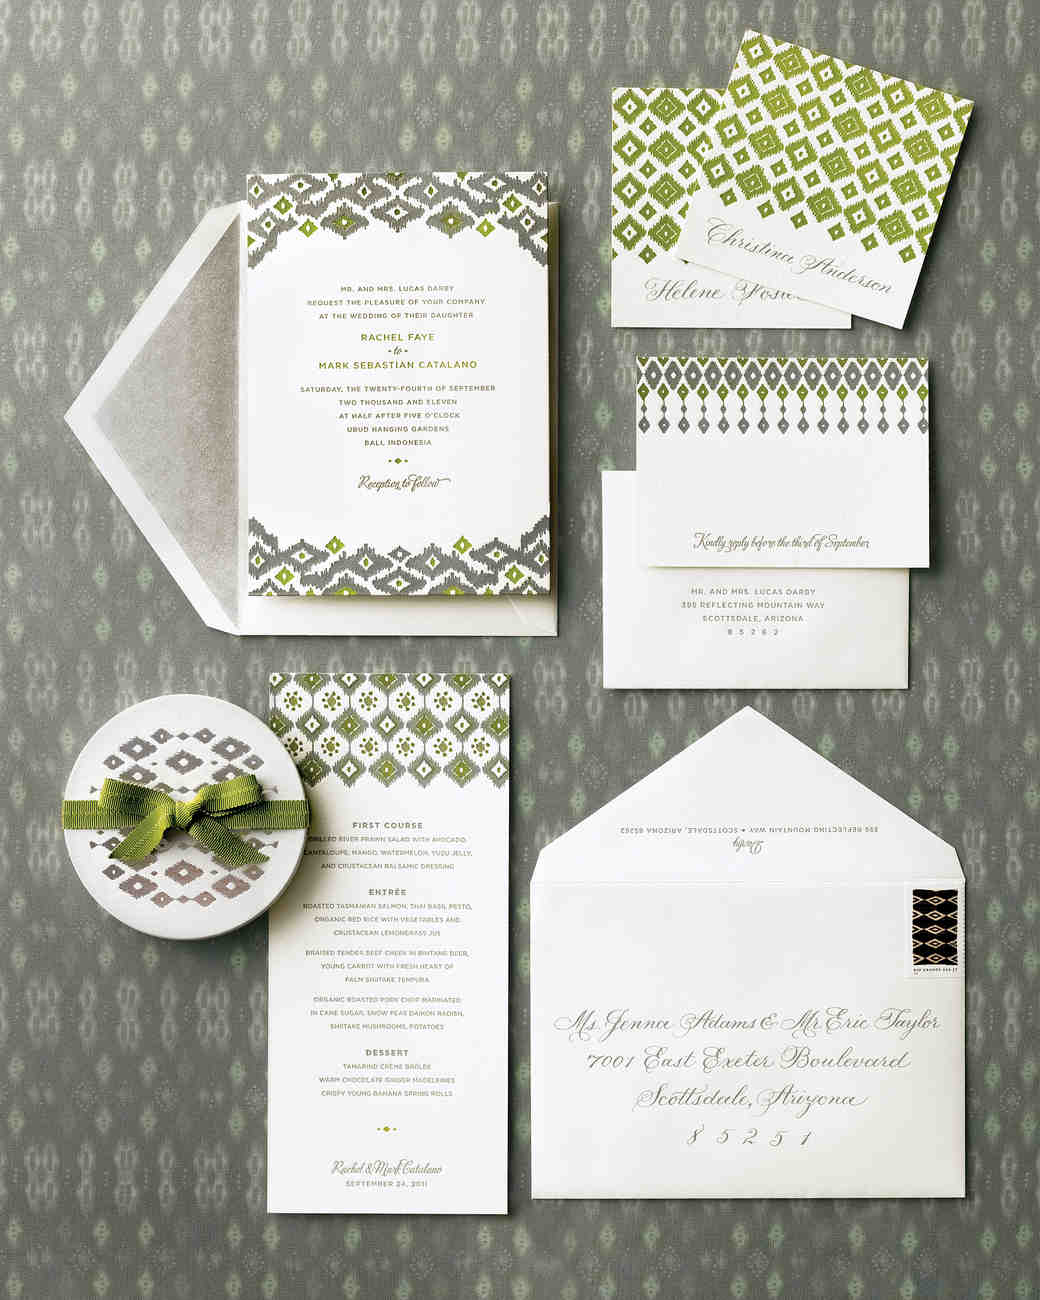 fabric-inspired wedding invitations | martha stewart weddings, Wedding invitations